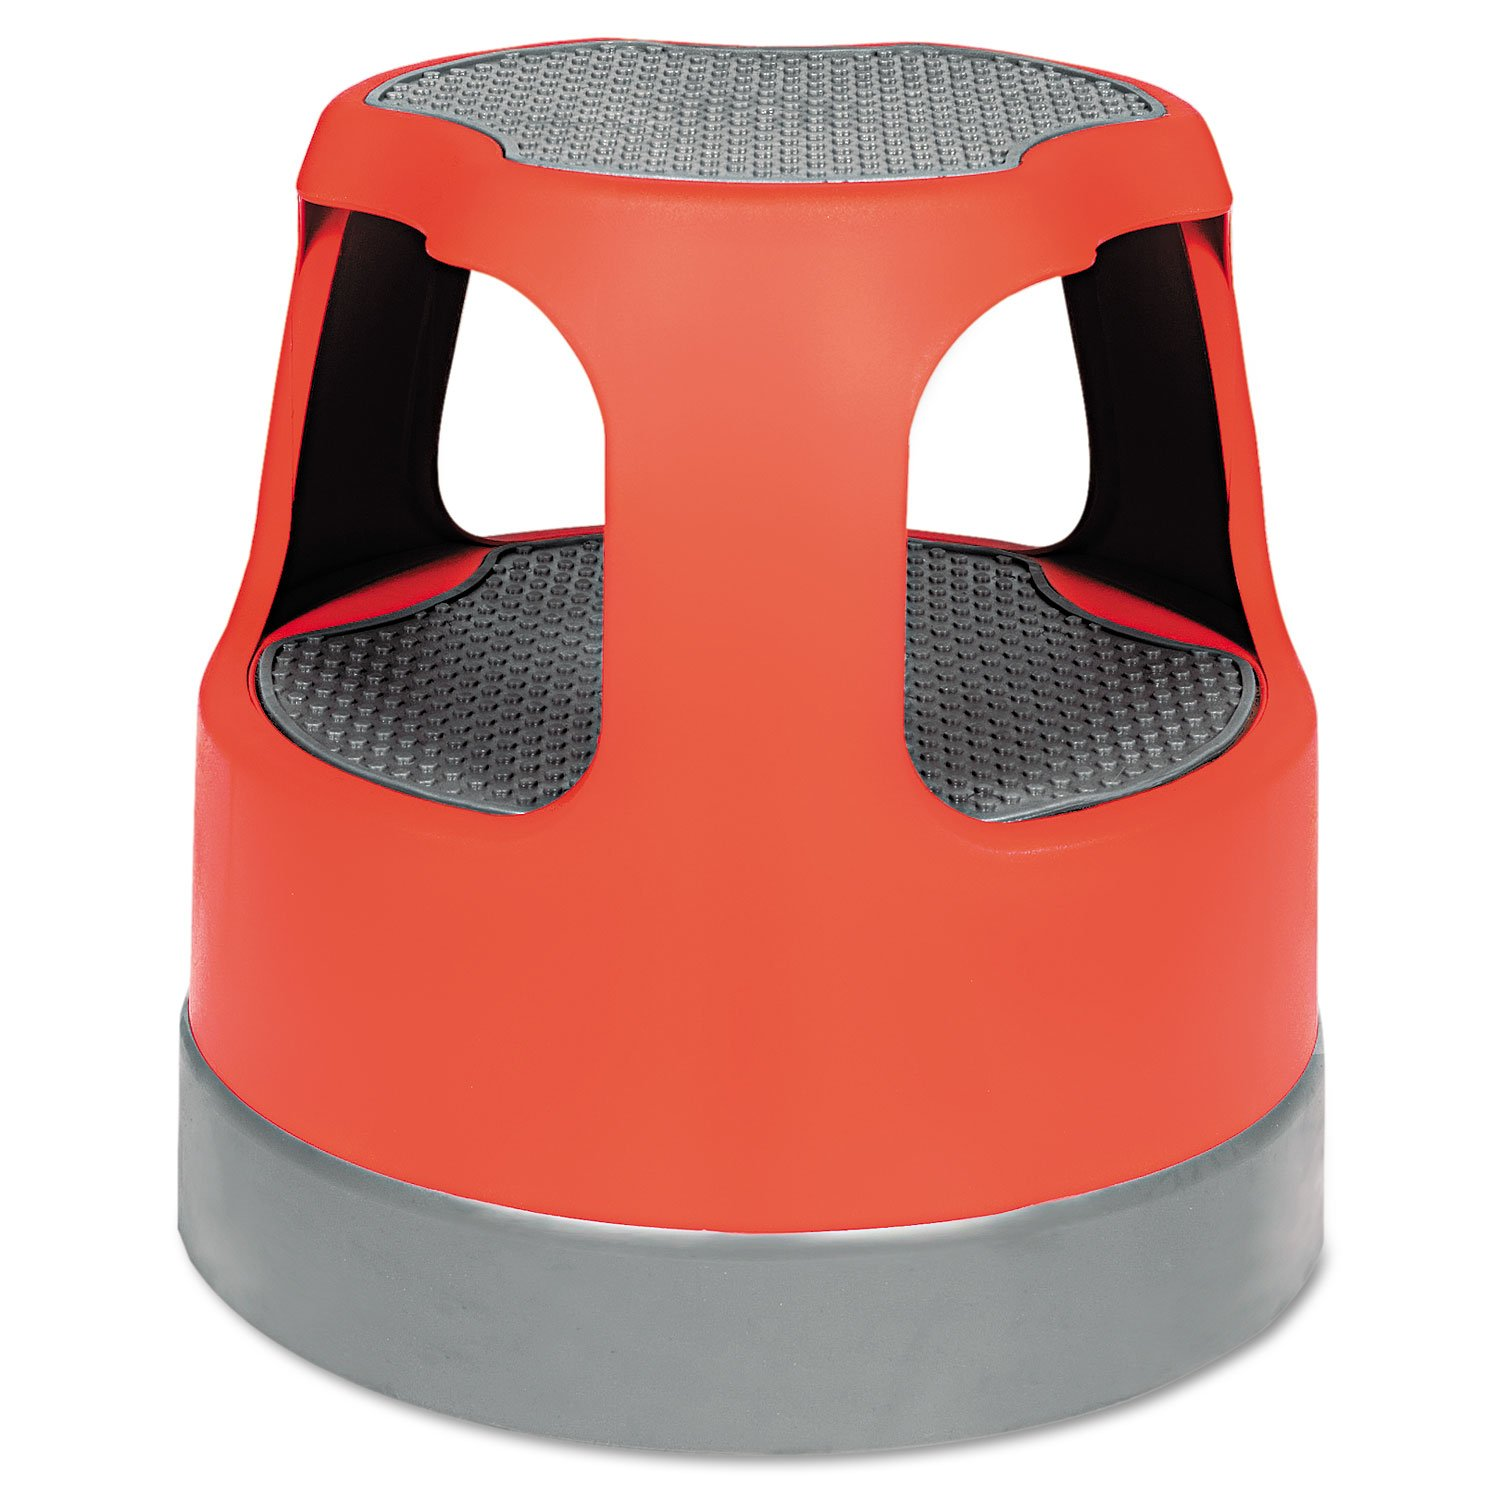 Scooter Stool Round, 15'', Step & Lock Wheels, to 300 lbs, Red by Cramer